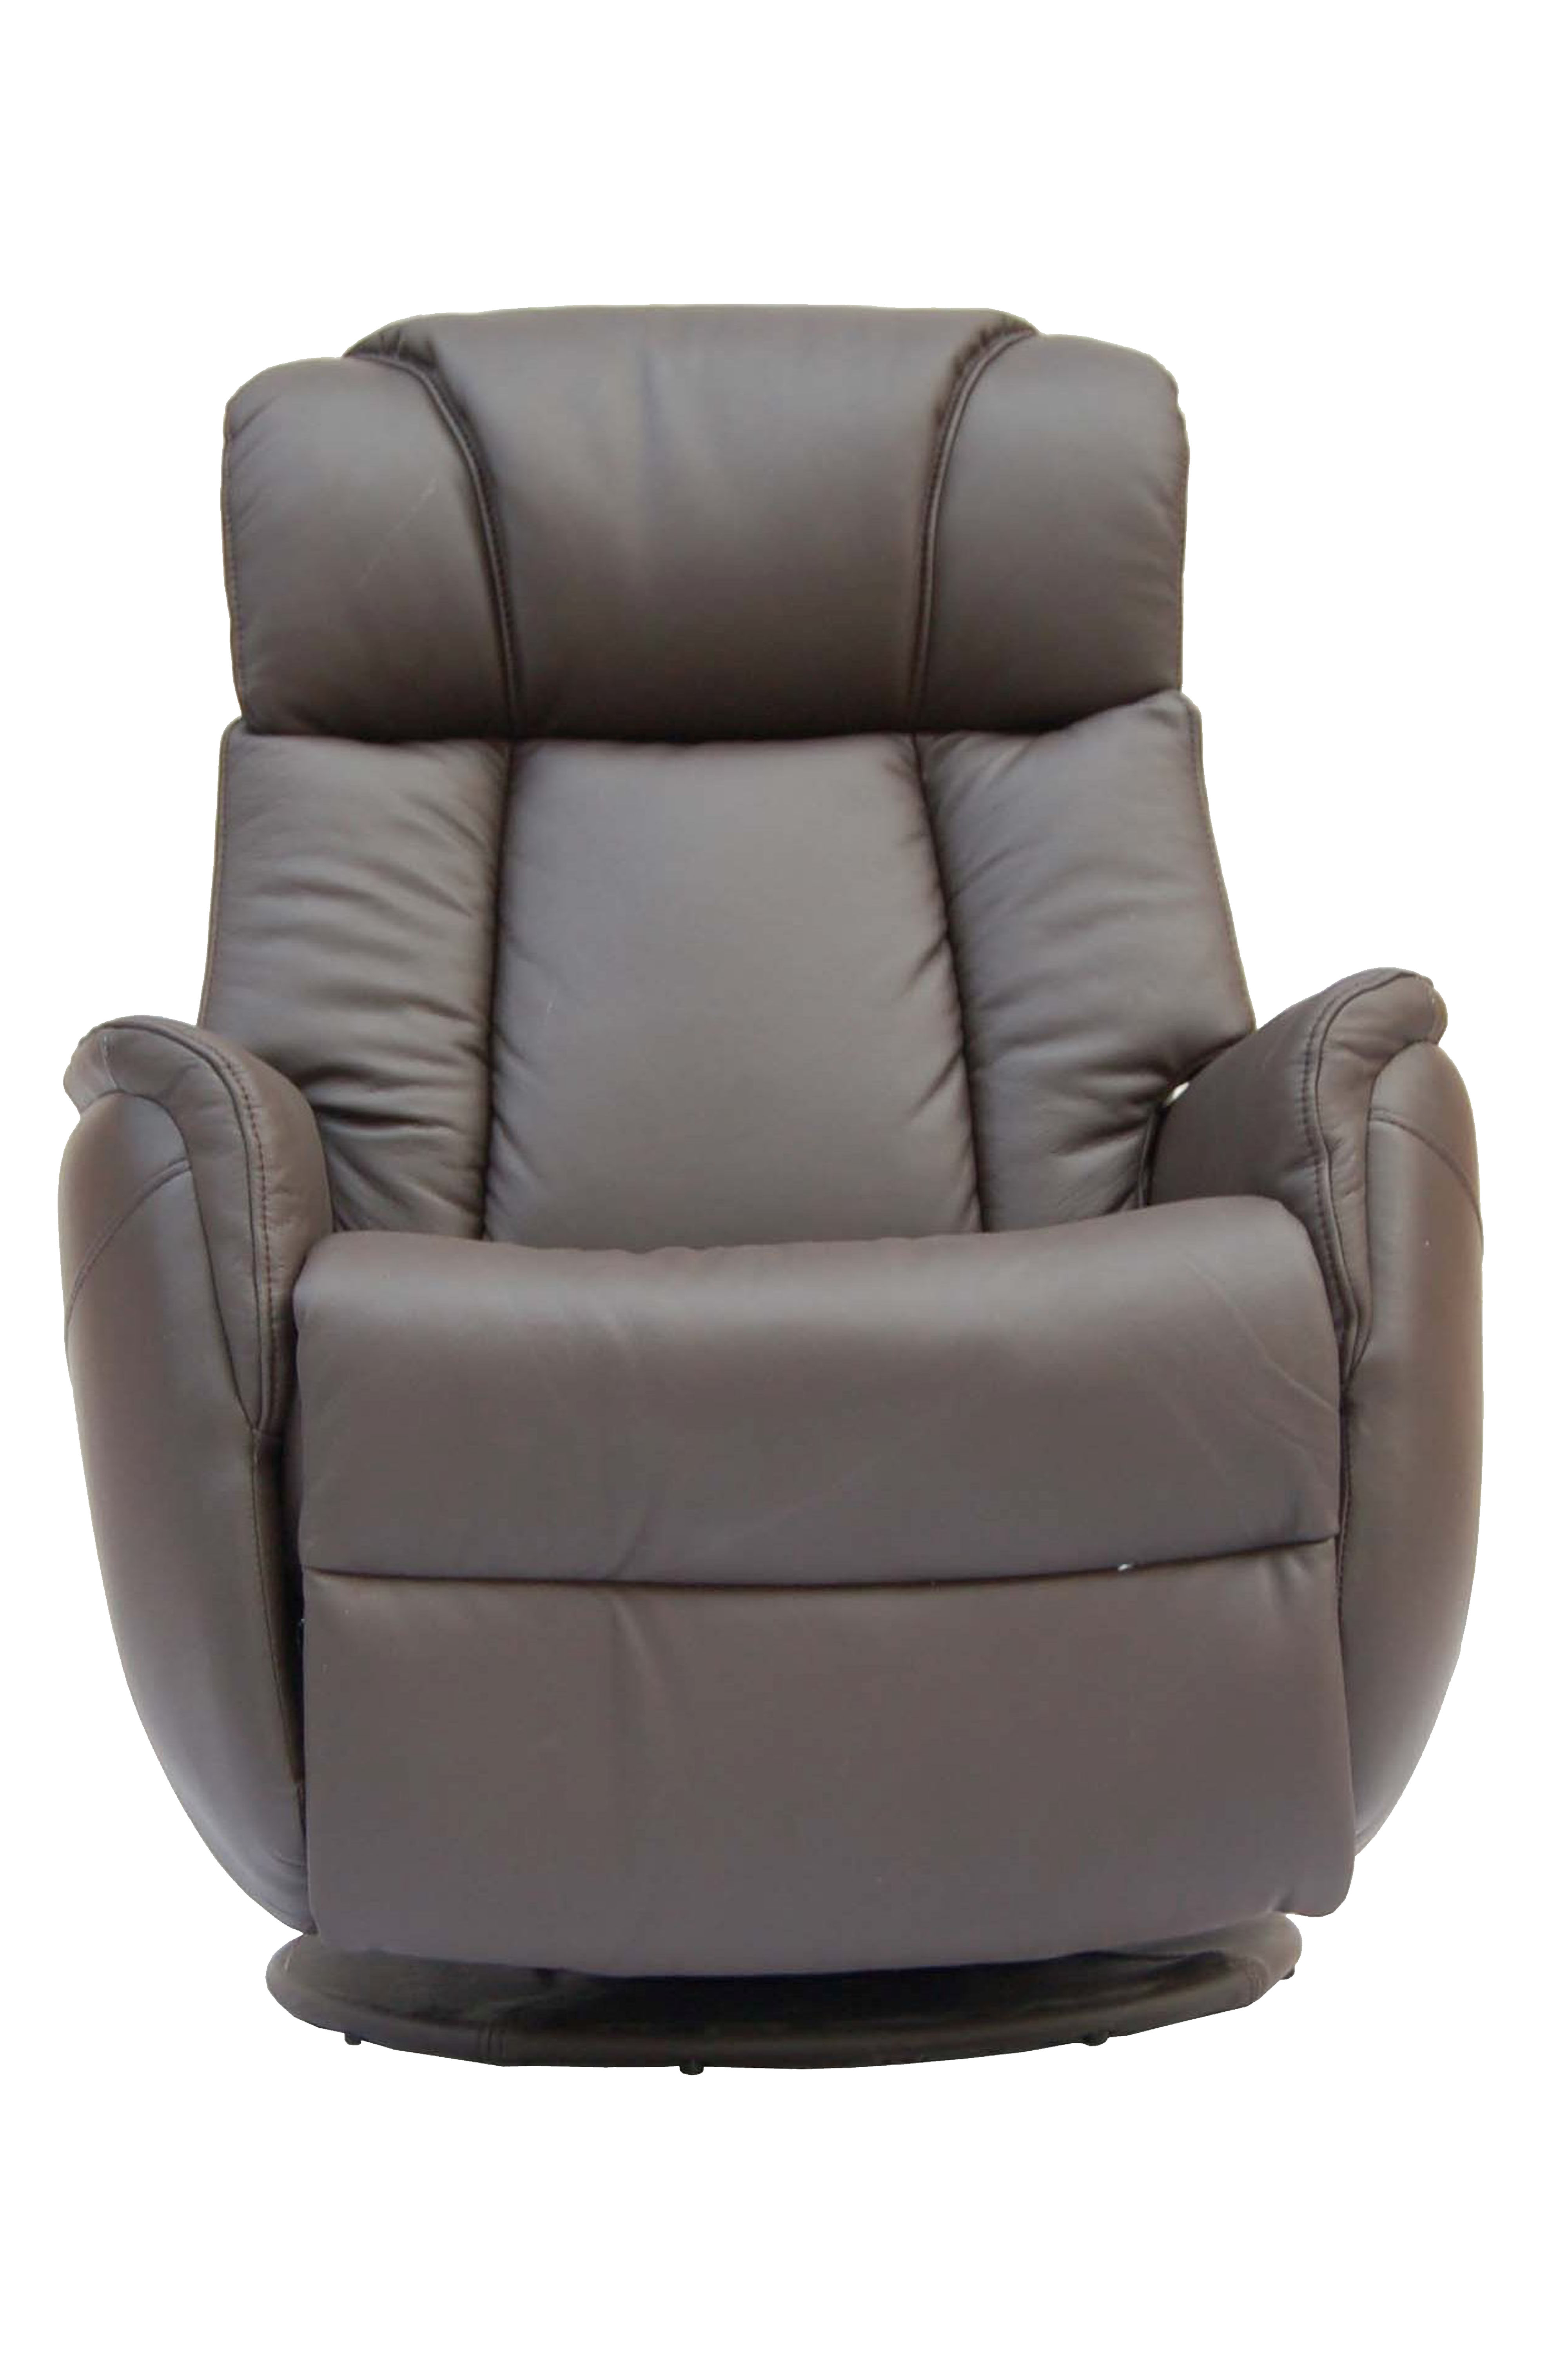 Gfa Sorrento Electric Rock & Swivel Leather Recliner Chair – Espresso Inside Espresso Leather Swivel Chairs (Image 18 of 25)